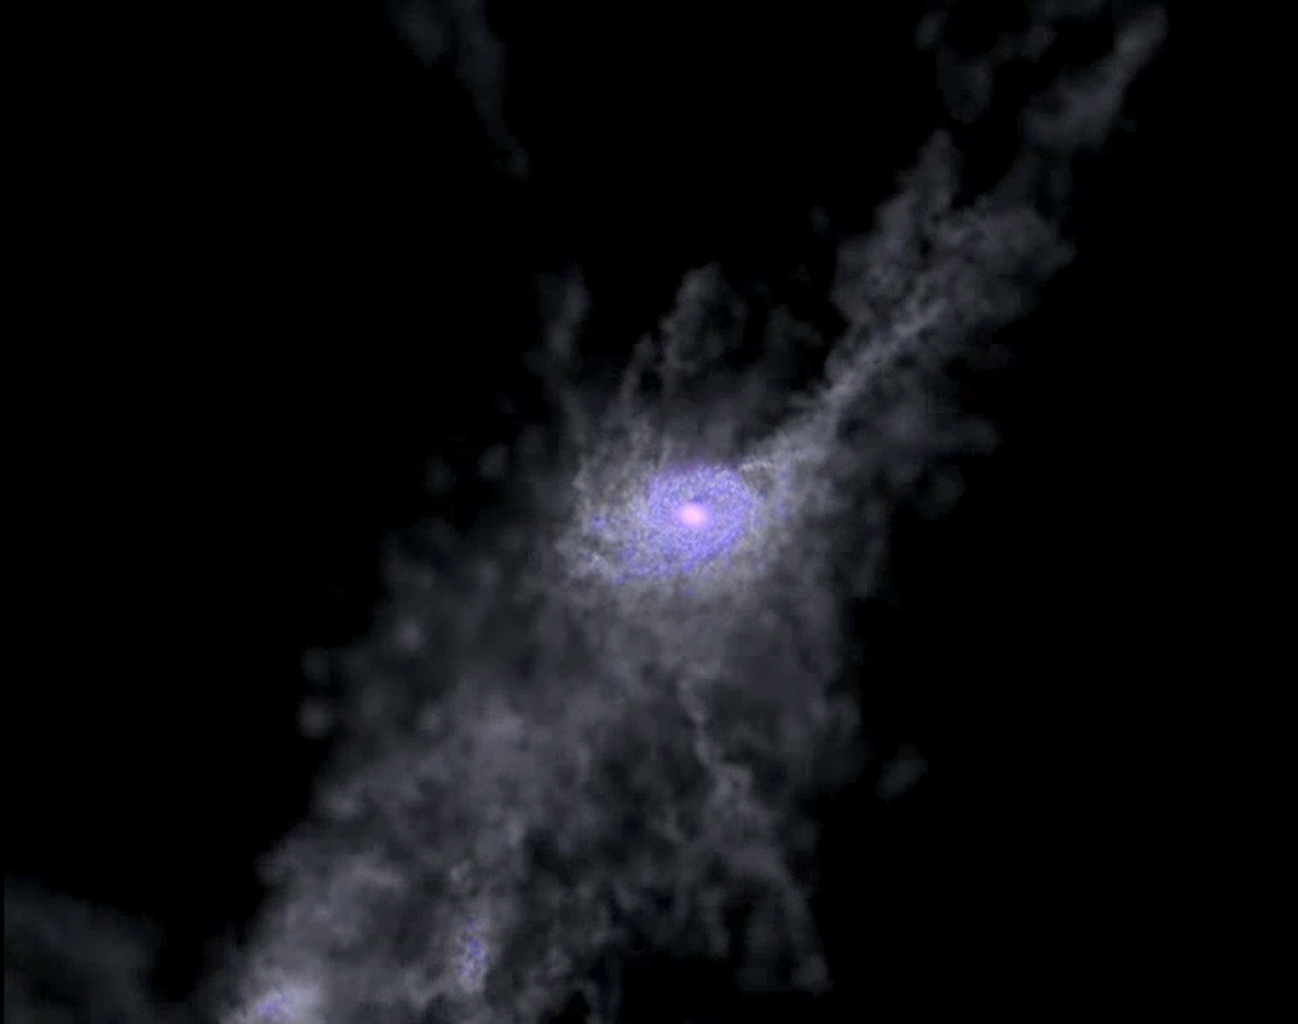 Created with the help of supercomputers, this frame from a simulation shows the formation of a massive galaxy during the first 2 billion years of the universe.